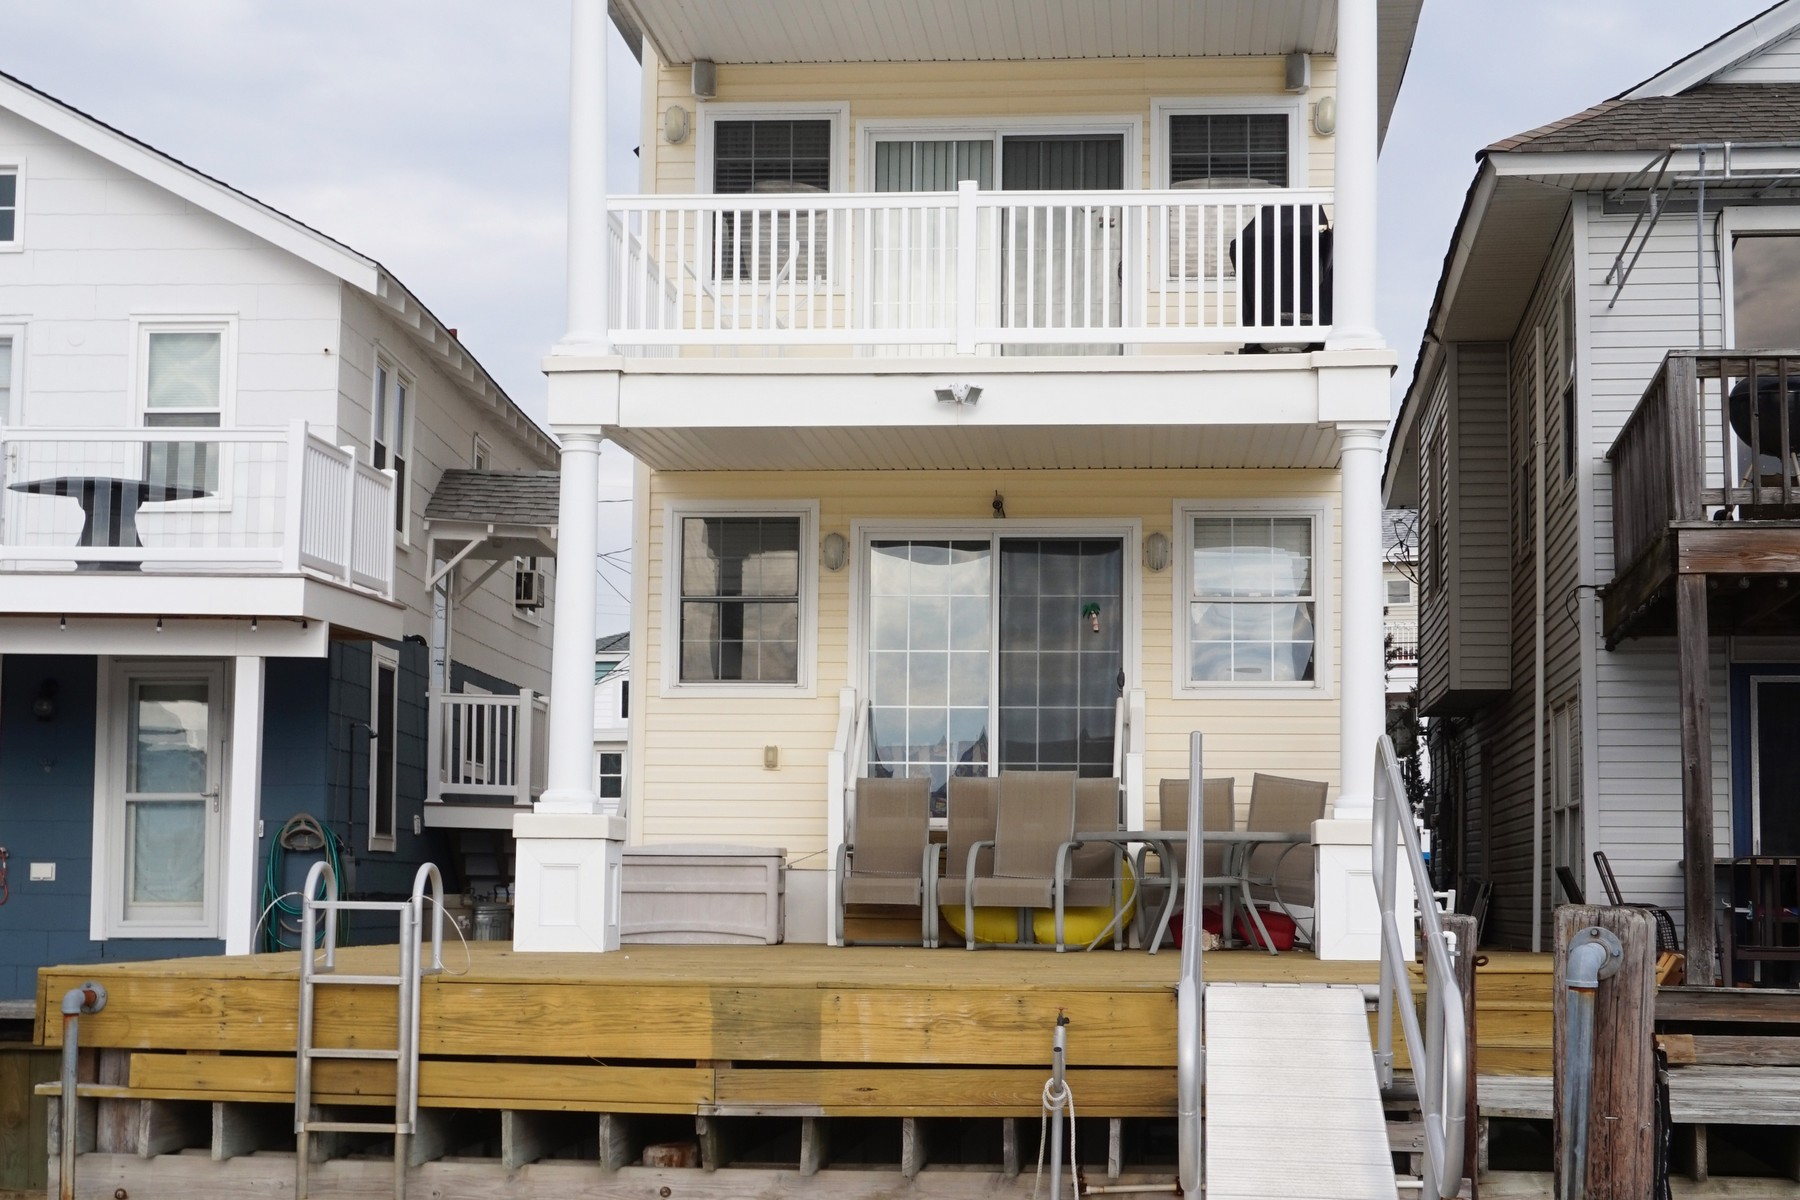 Single Family Home for Sale at Incredible Bayfront Single 38 W. 16th Street Ocean City, New Jersey, 08226 United States